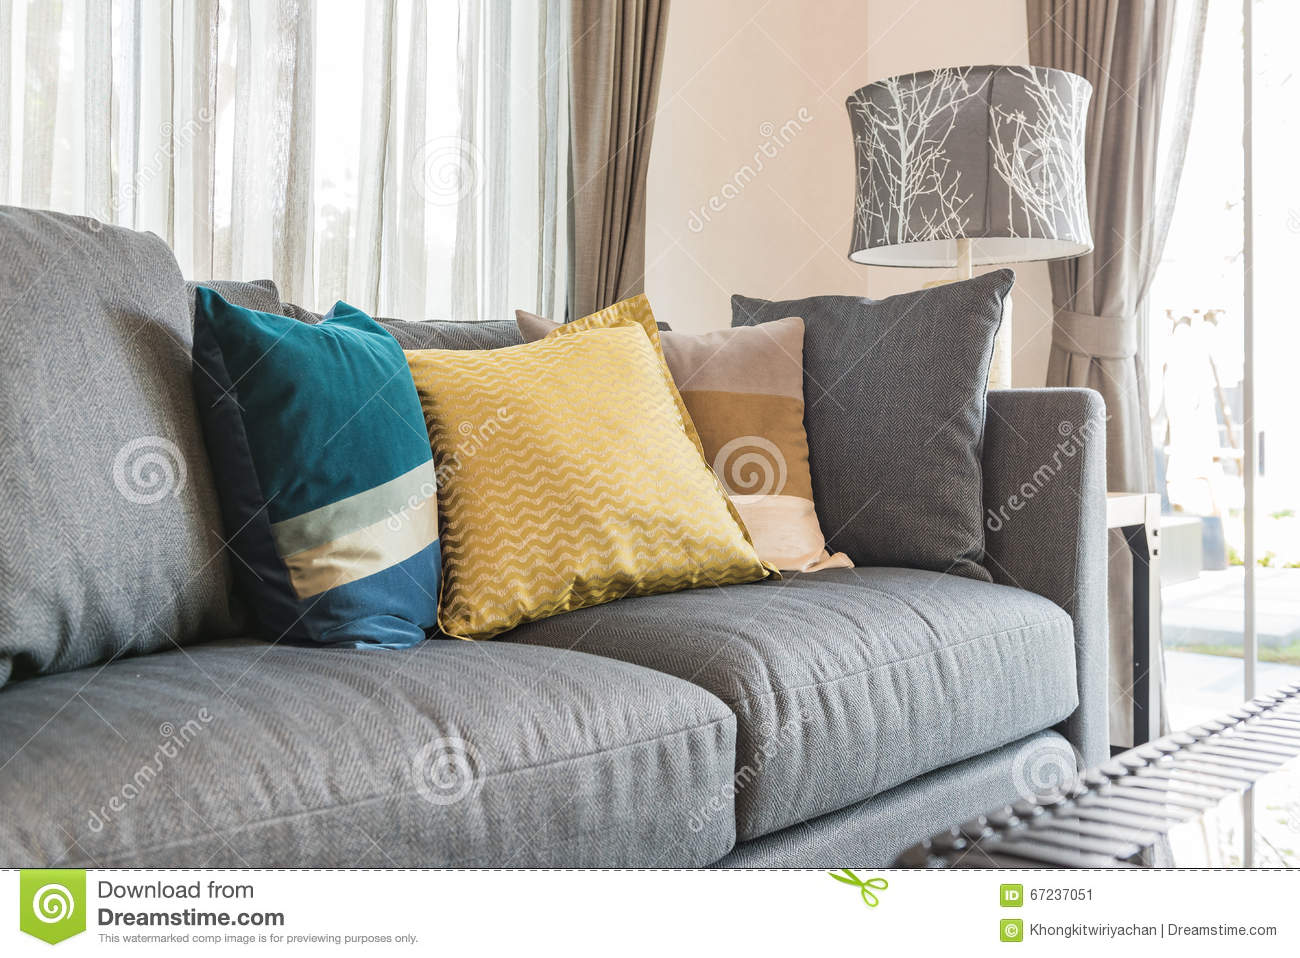 Colorful Pillows On Modern Grey Sofa In Living Room Stock Photo